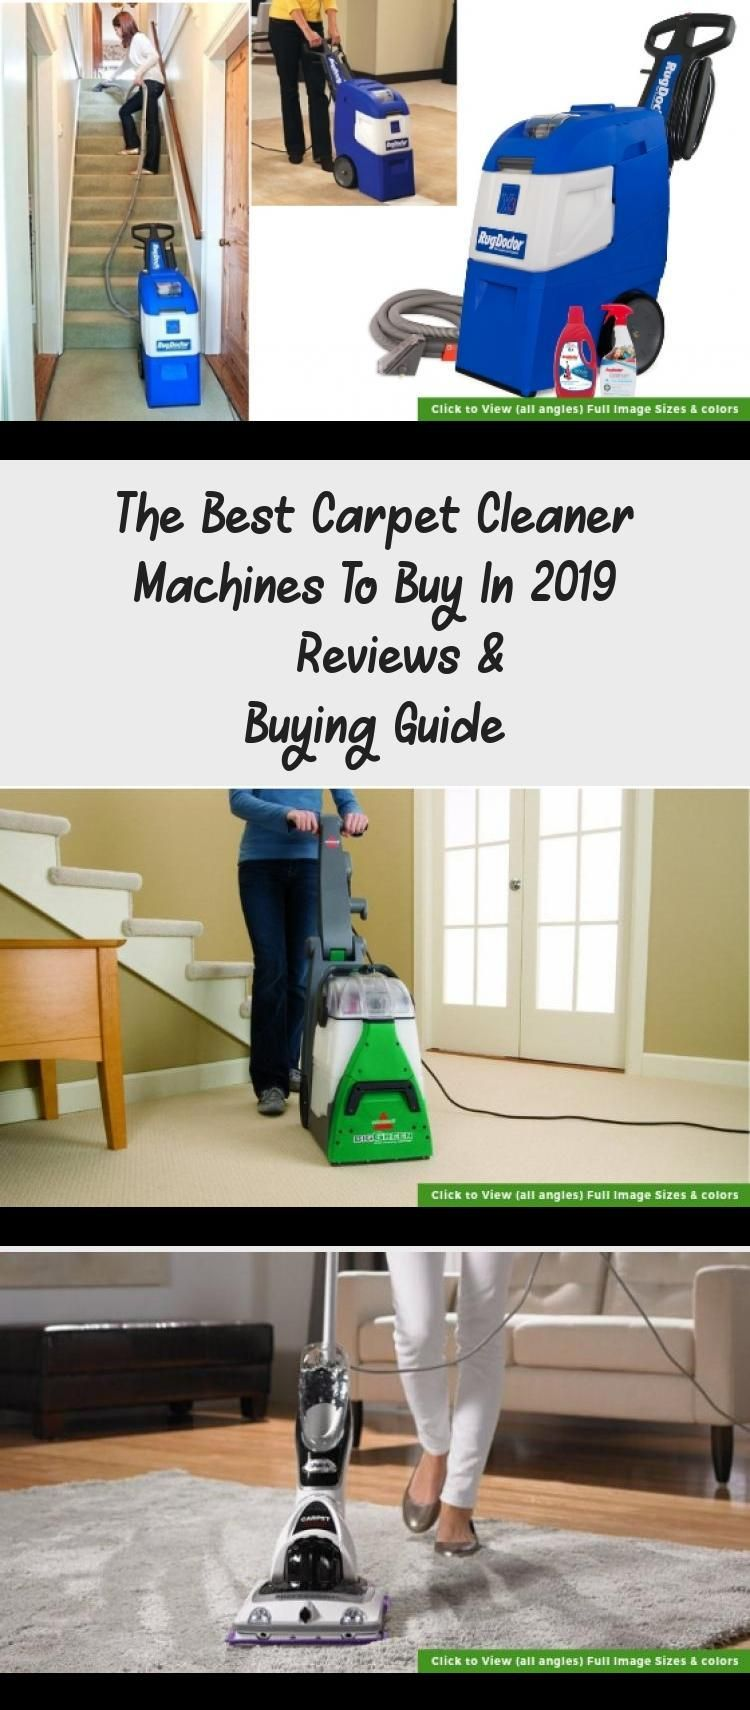 The Best Carpet Cleaner Machines To Buy In 2019 Reviews Buying Guide In 2020 With Images Carpet Cleaners Natural Carpet Cleaners Best Carpet